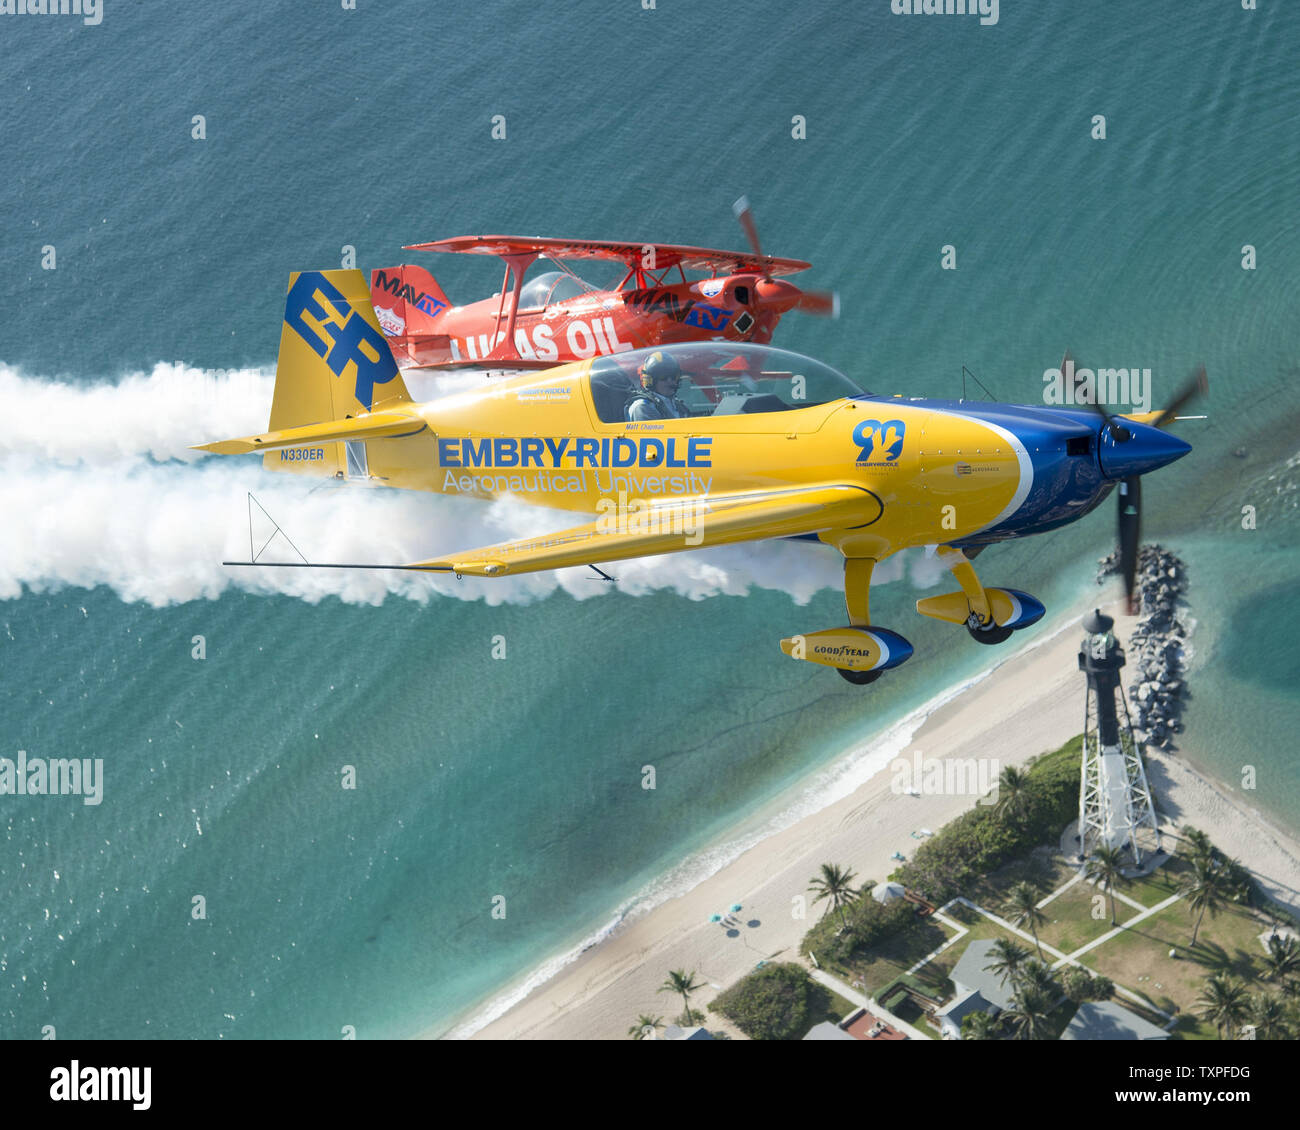 Embry Riddle Stock Photos & Embry Riddle Stock Images - Alamy